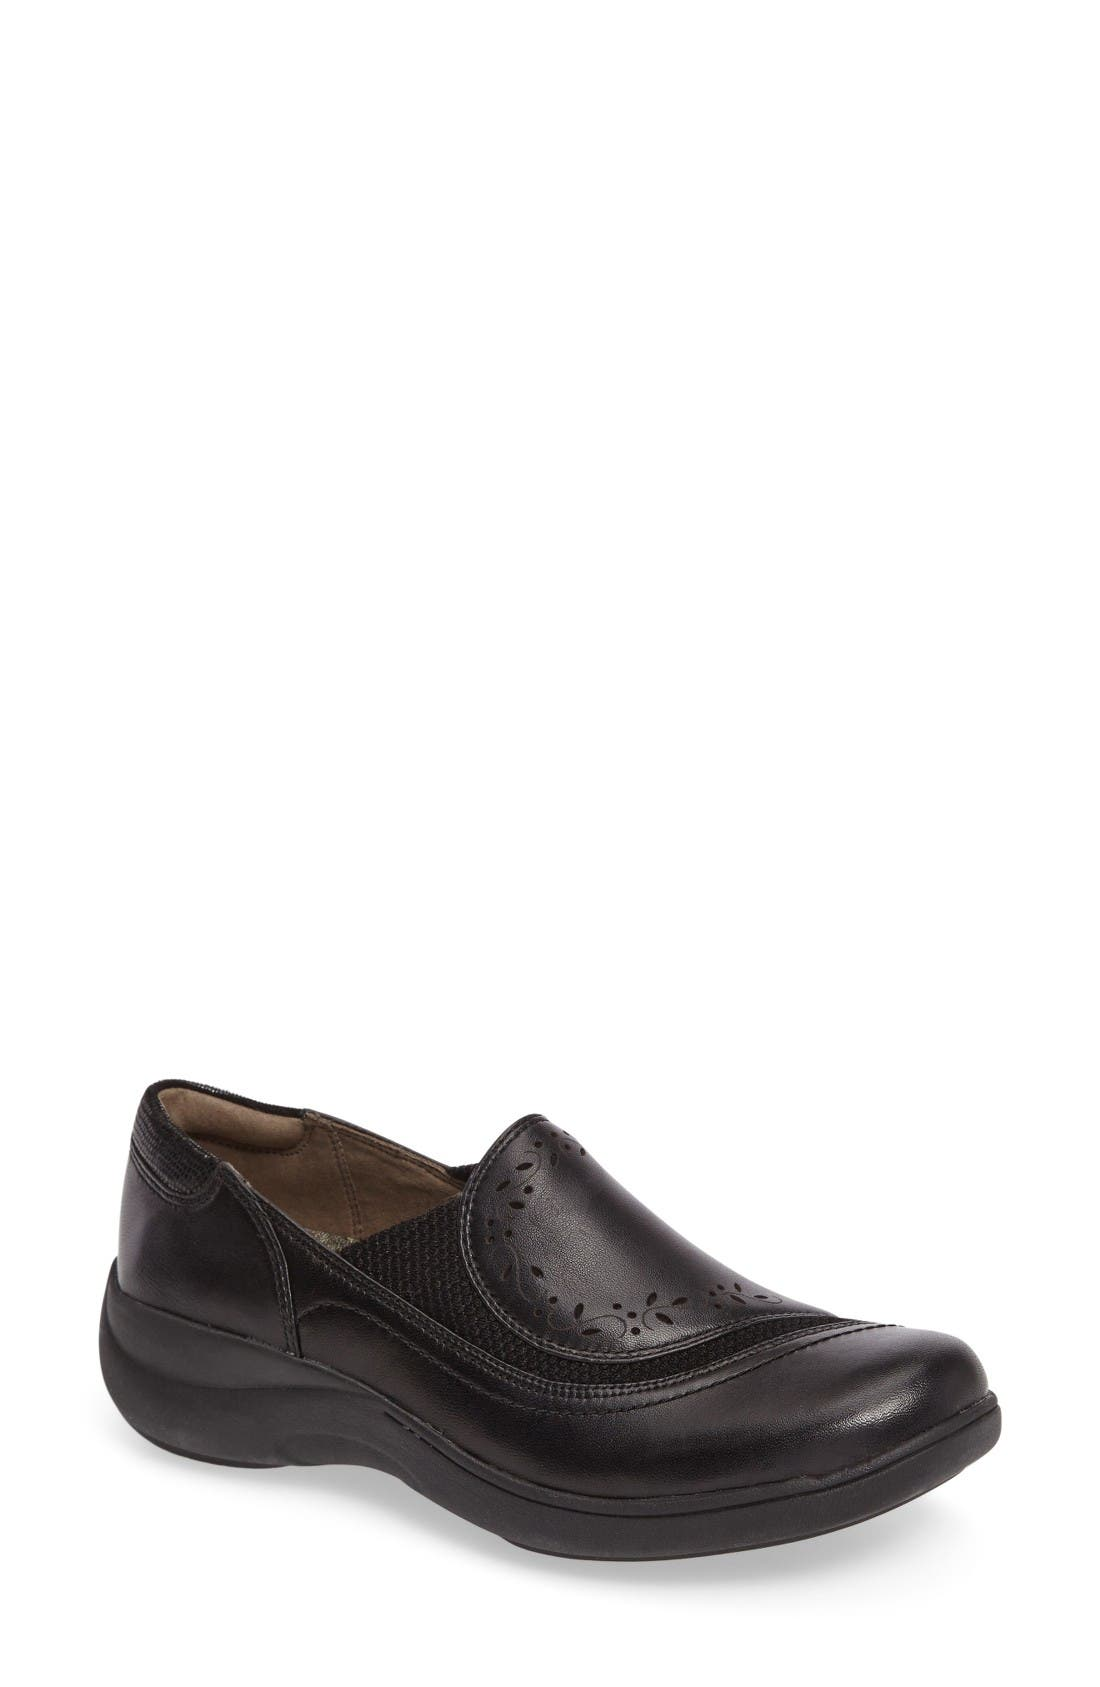 Revsolace Flat,                         Main,                         color, Black Leather